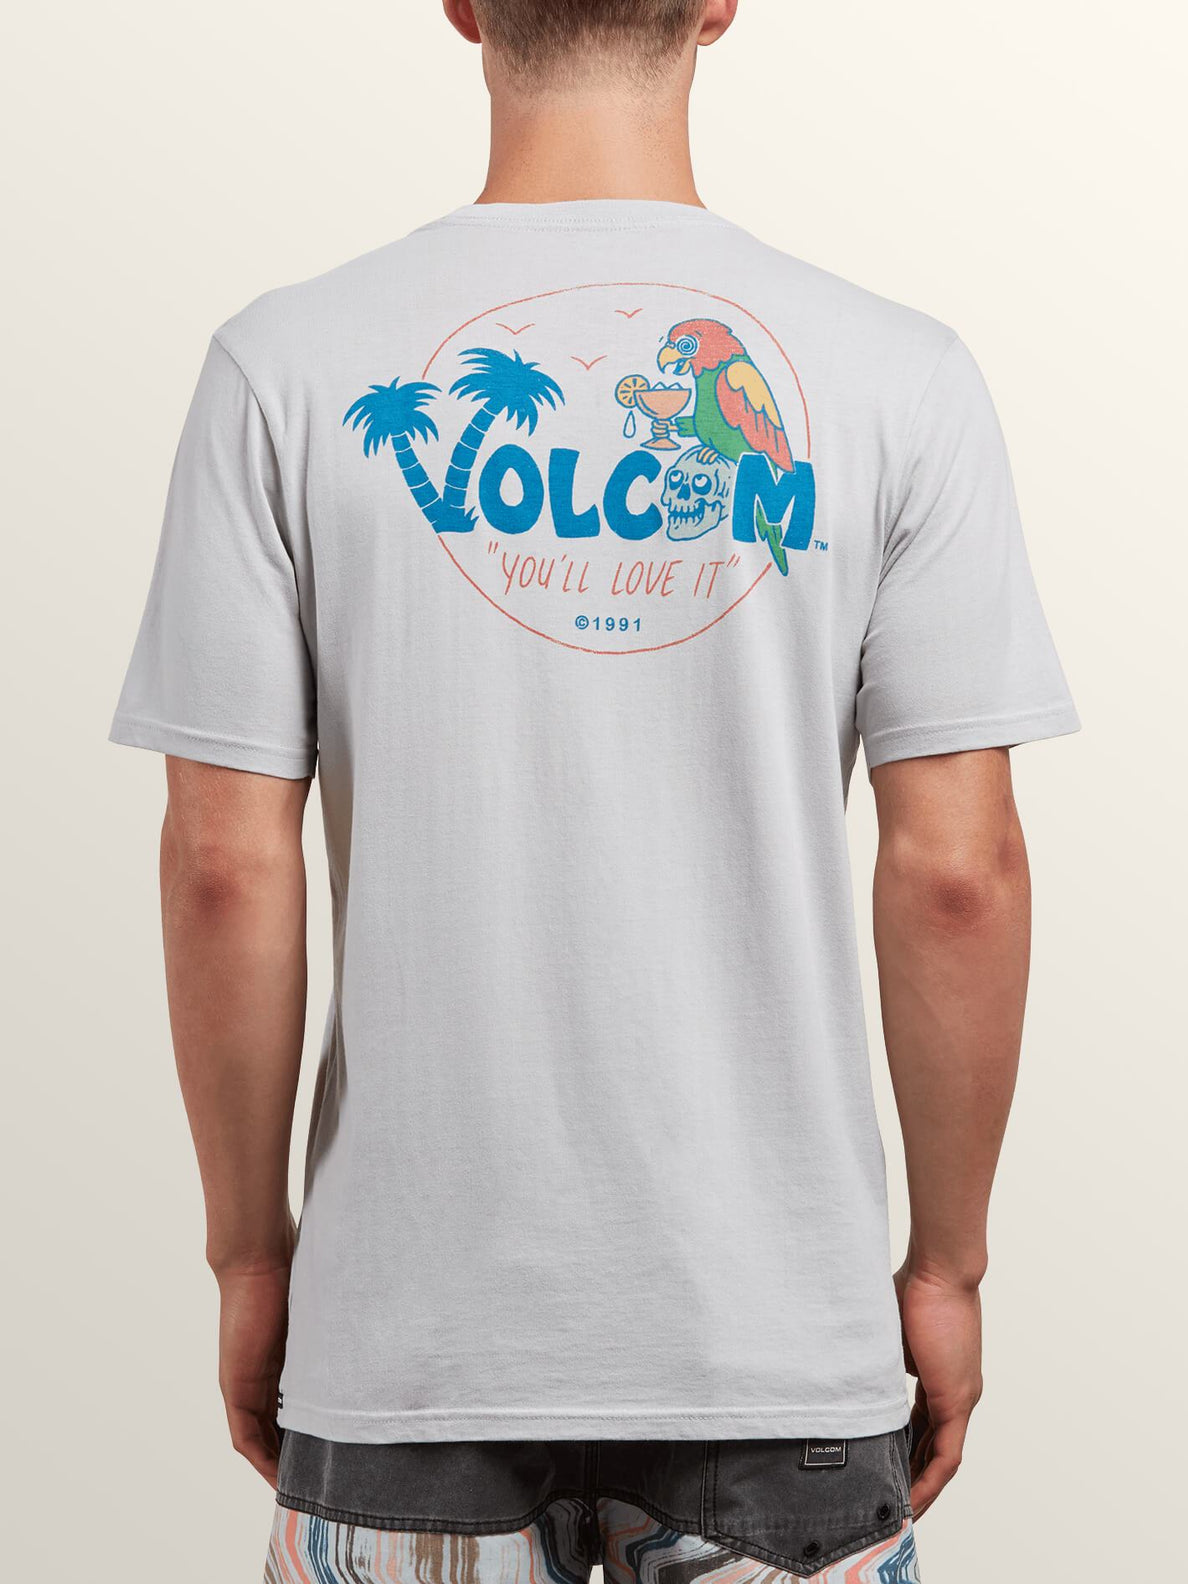 El Loro Loco Short Sleeve Tee In Off White, Back View